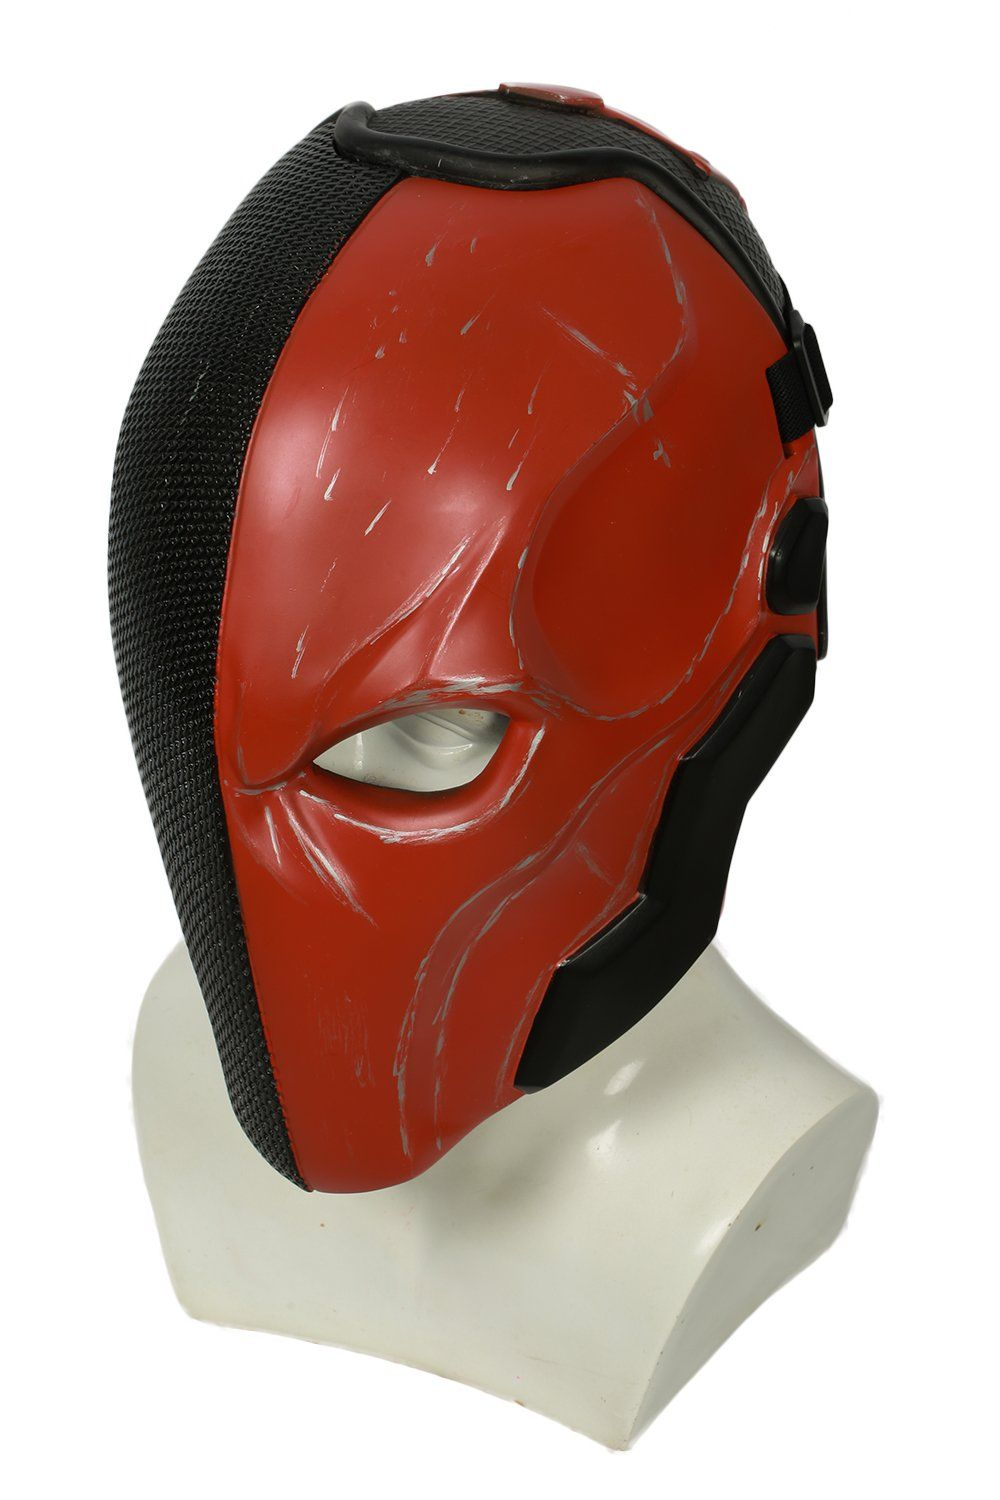 Scary Halloween Costumes Deathstroke Mask Updated Adult